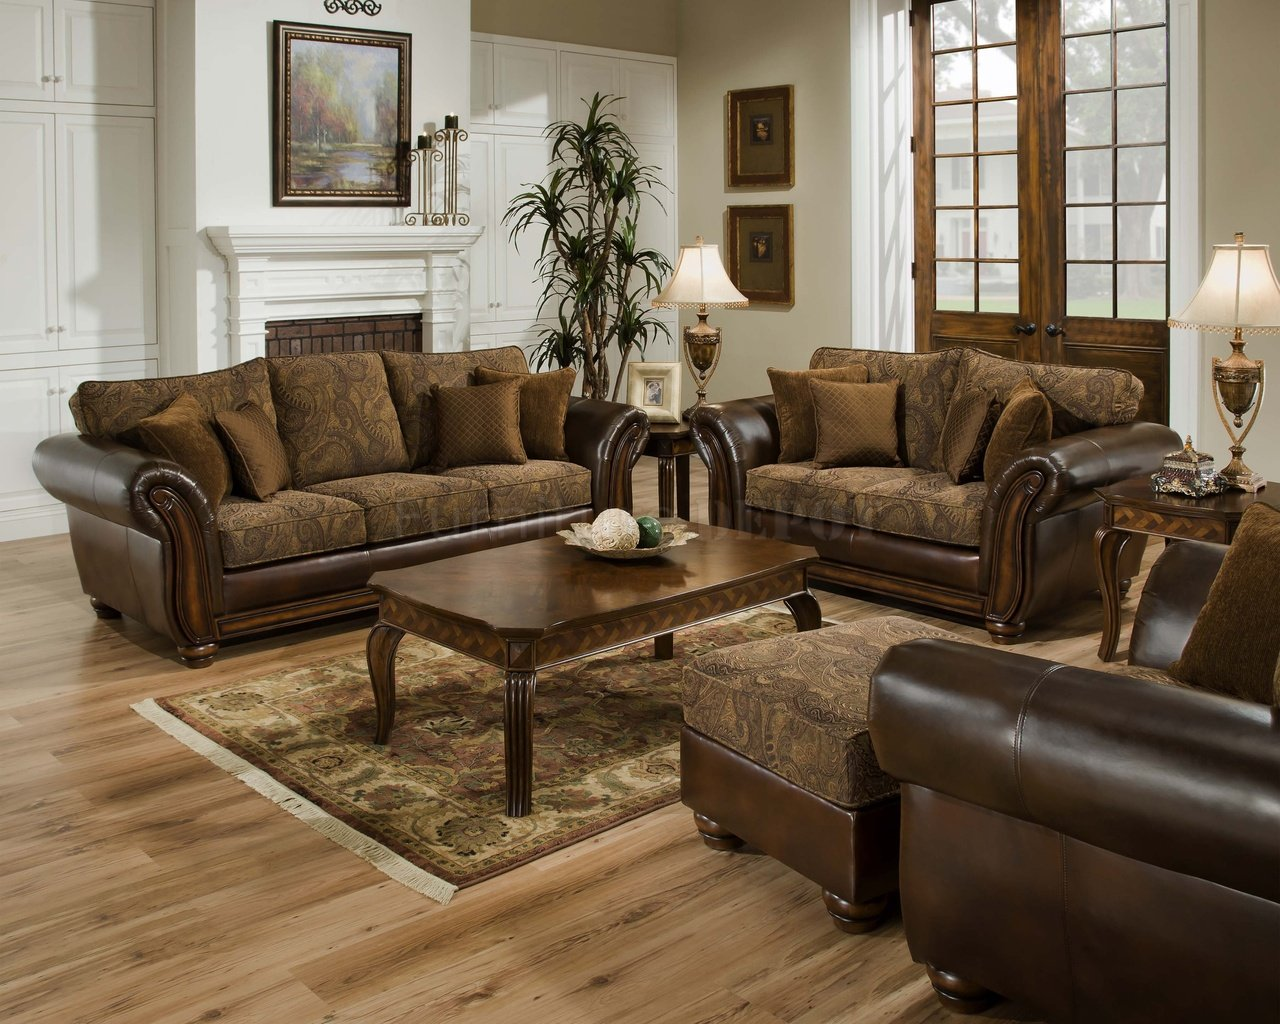 Beautiful Awesome Couch And Loveseat 24 About Remodel Sofa Design Ideas With Couch  And Loveseat